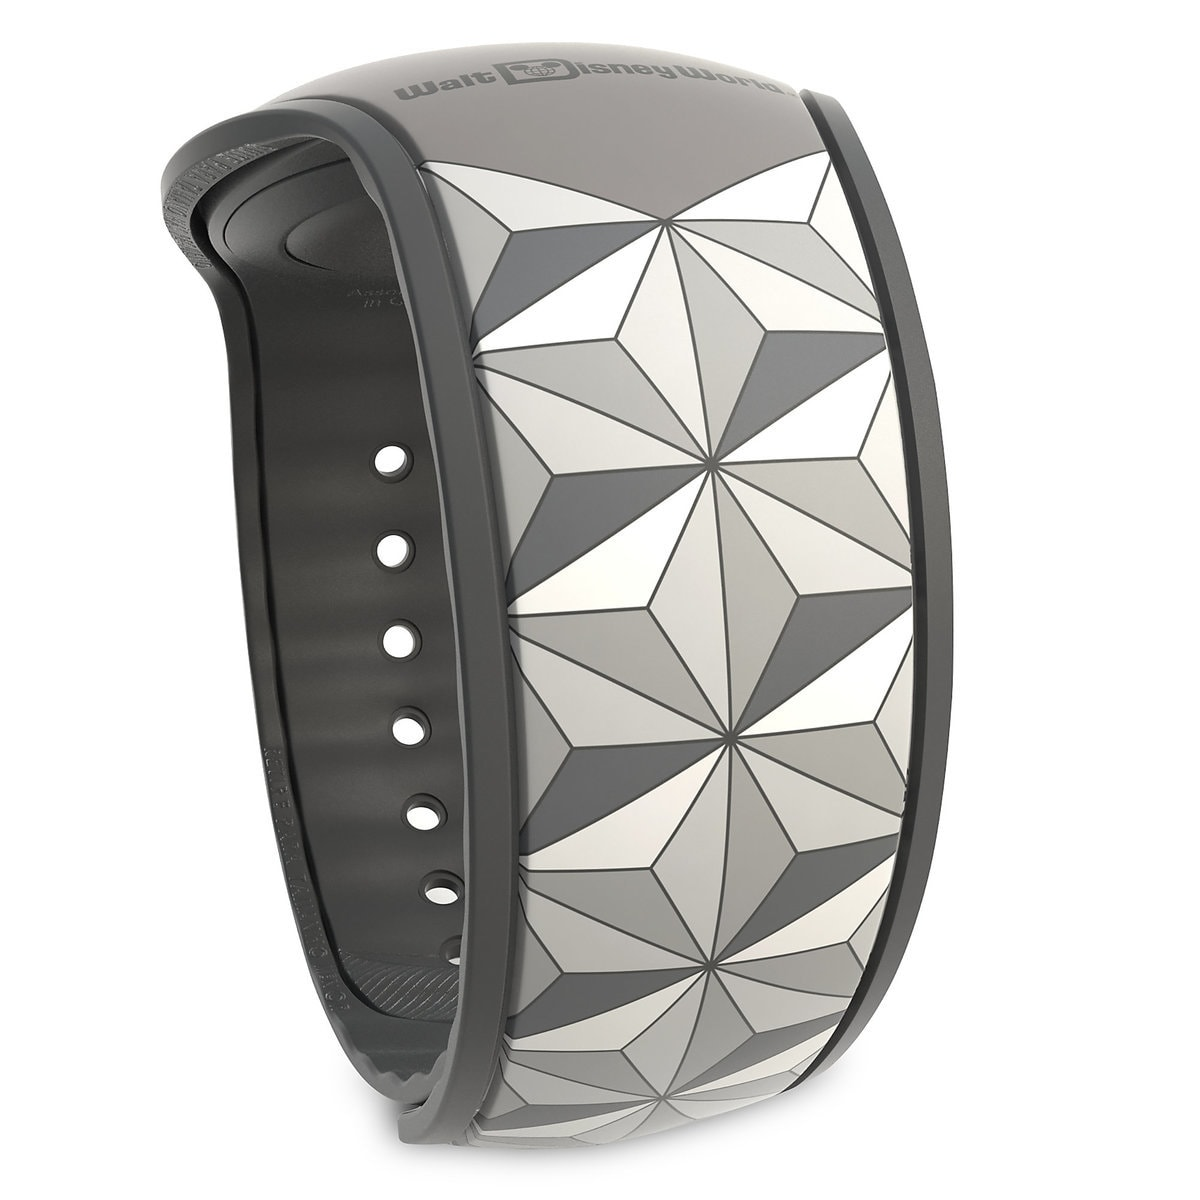 7c1b9b57029ba1 Product Image of Spaceship Earth MagicBand 2 - Epcot # 1